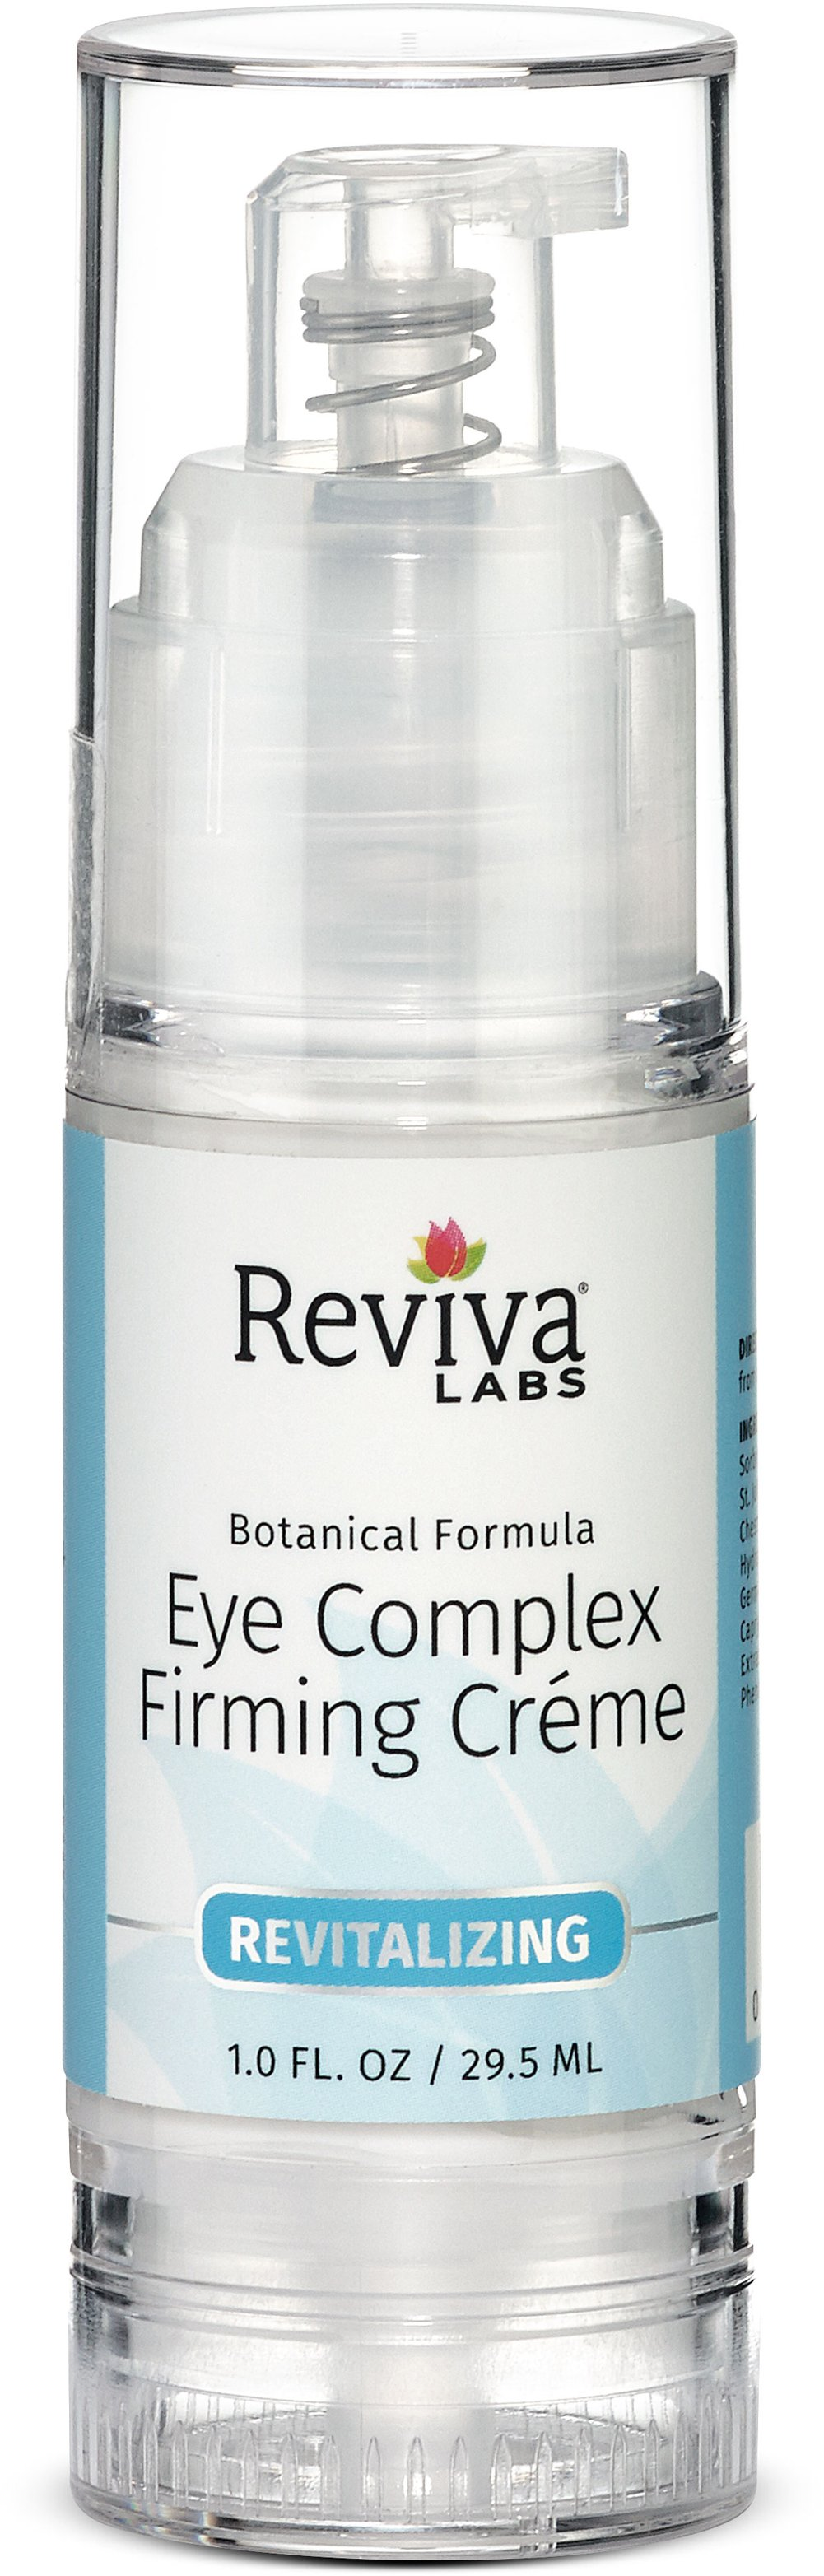 Reviva Labs Eye Complex Firming Cream - 0.75 Oz Ambi Fade Cream for Oily Skin, 2 oz (Pack of 6)